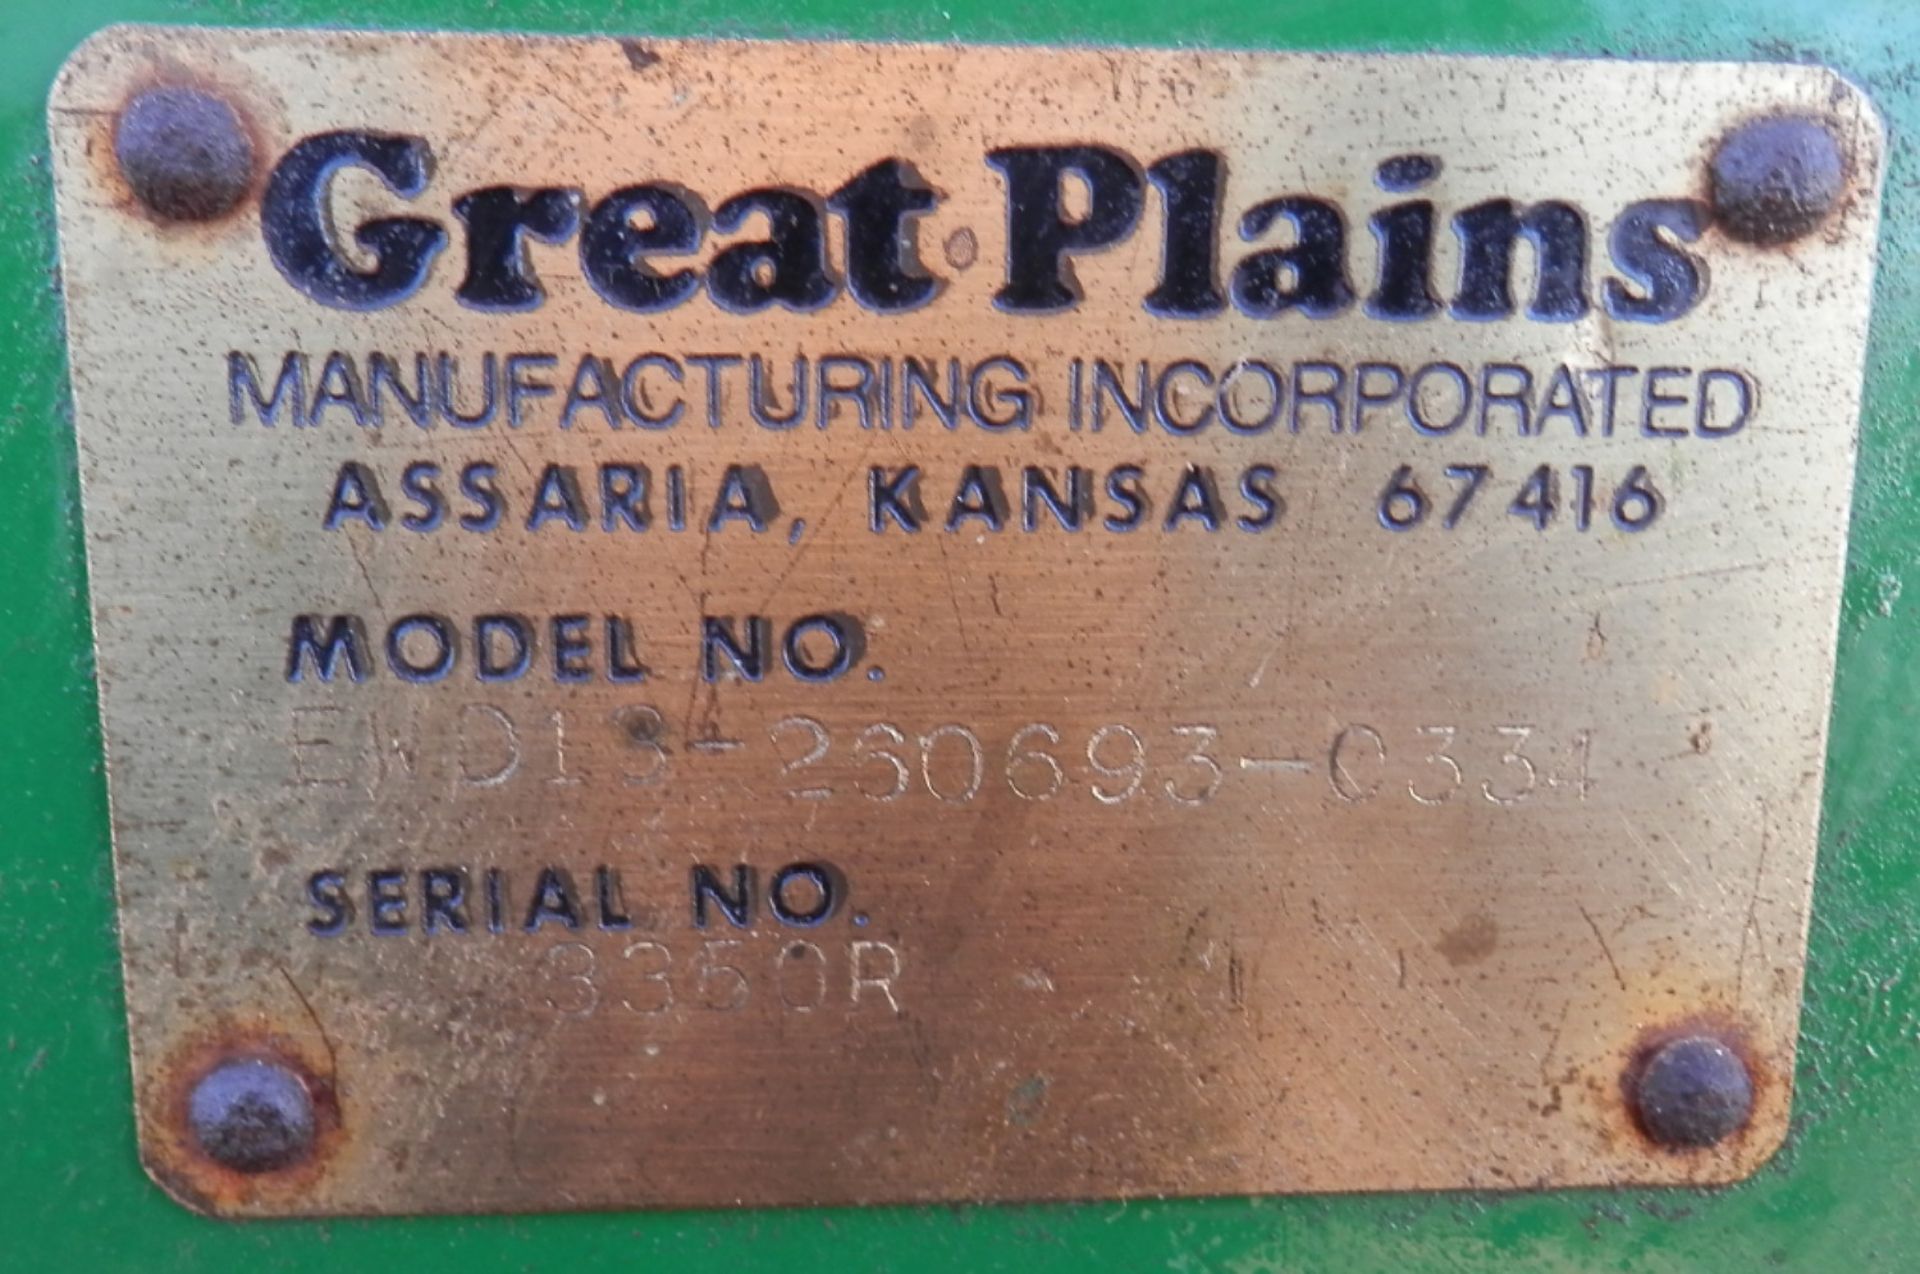 GREAT PLAINS SURESTAND 13 MDL EWD13-260693 26x6 GRAIN DRILL - Image 10 of 11